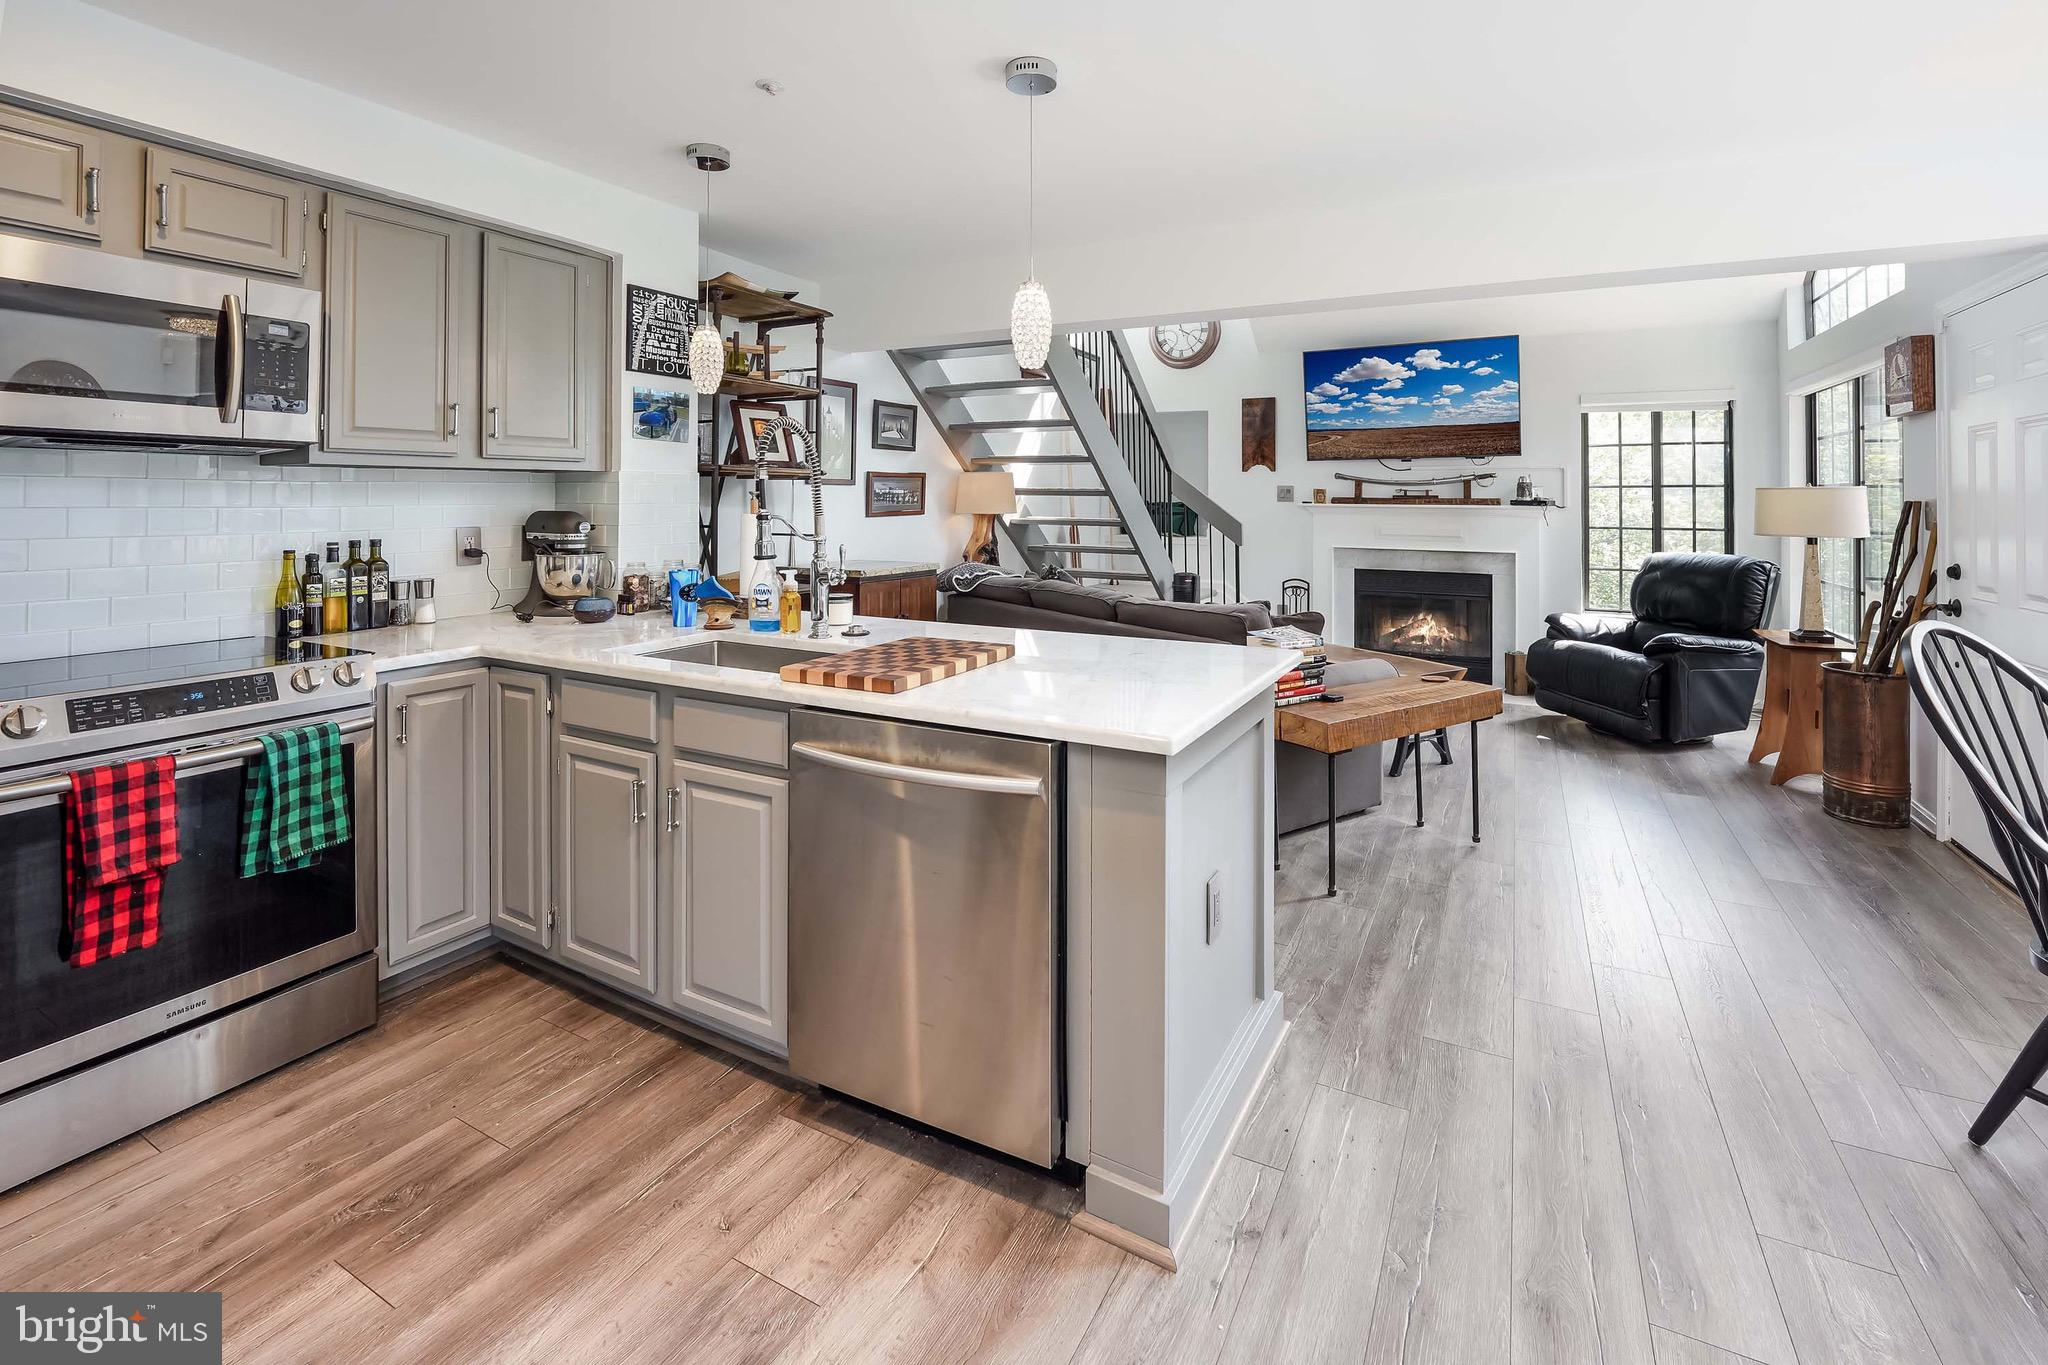 Renovated 2 level contemporary condo w/garage and Loft. Open lay out w/fireplace. High end kitchen w